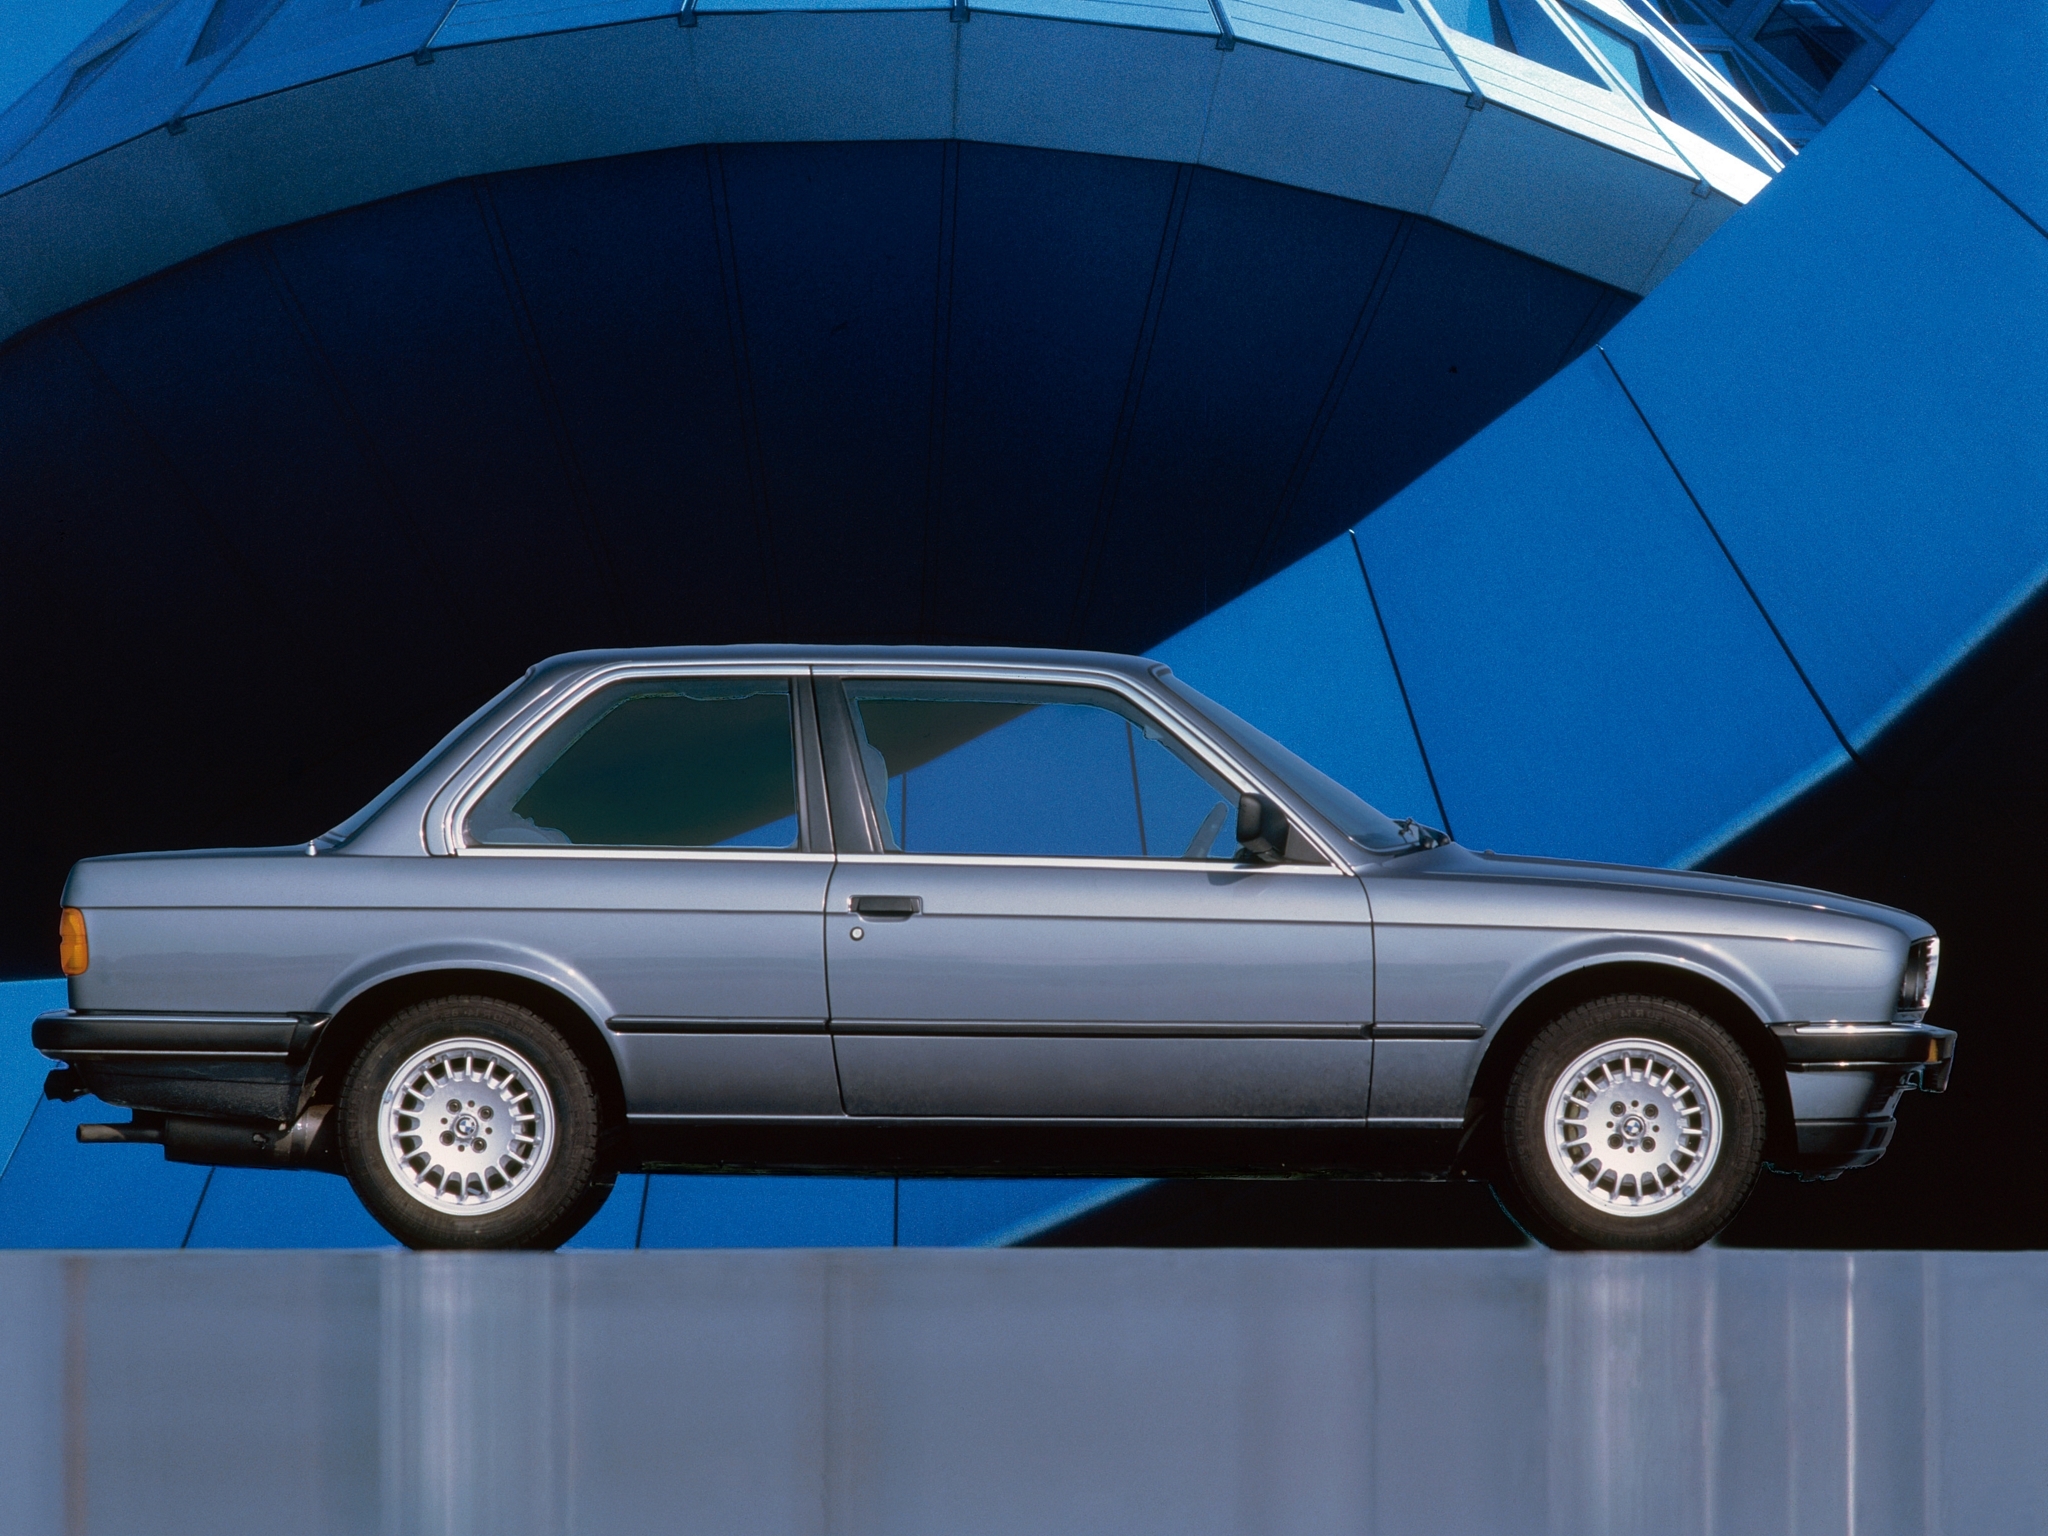 BMW 3 series 318i 1982 photo - 2